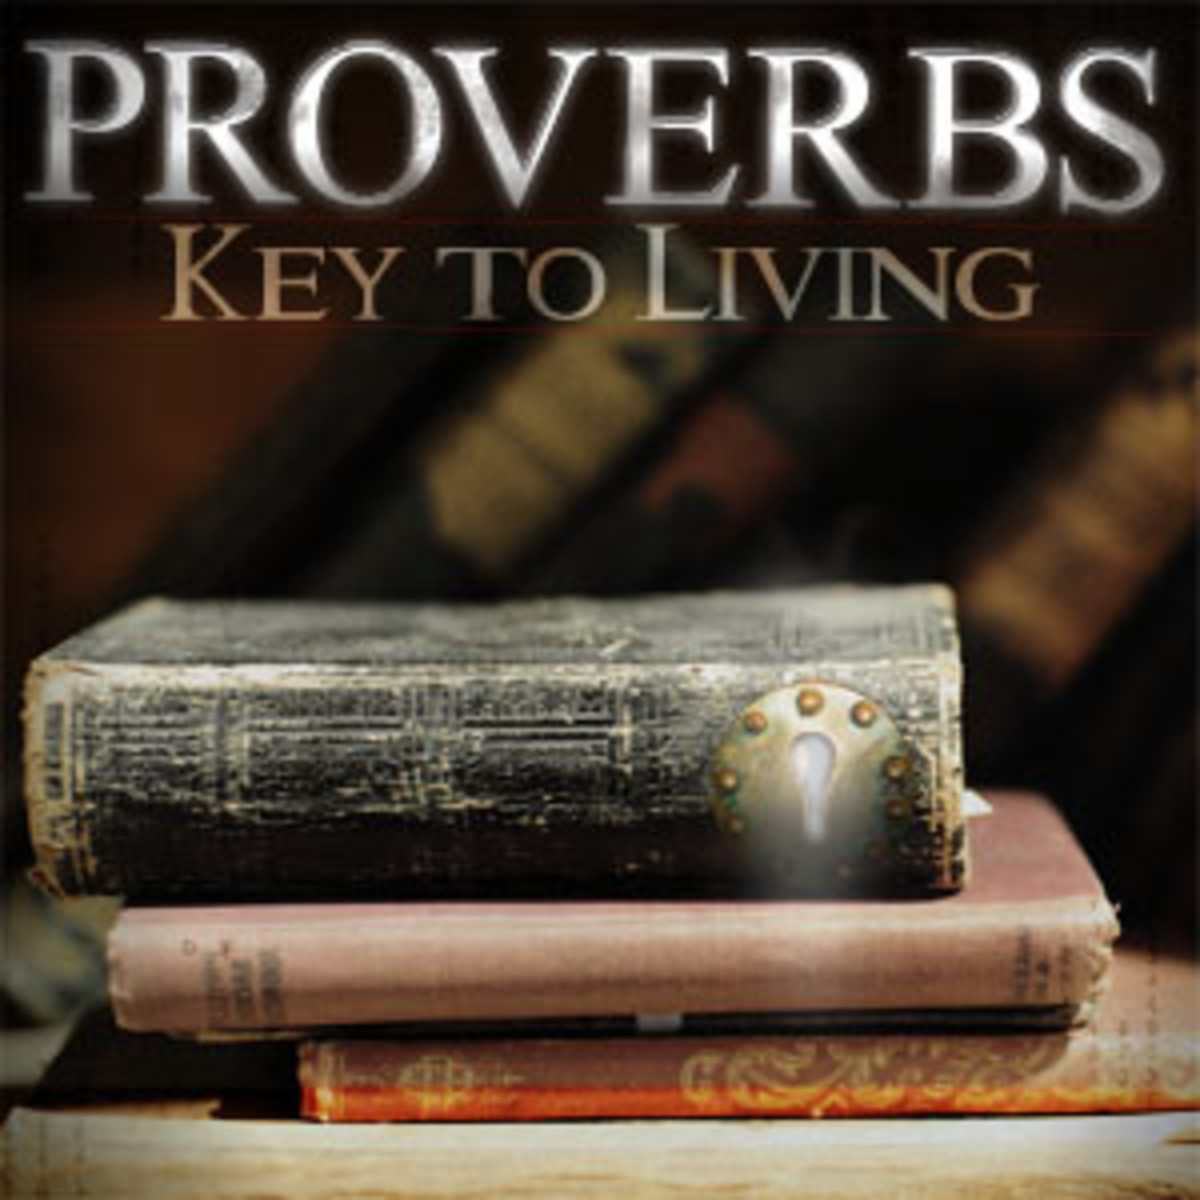 How to Make Better Decisions UsingThe Book of Proverbs